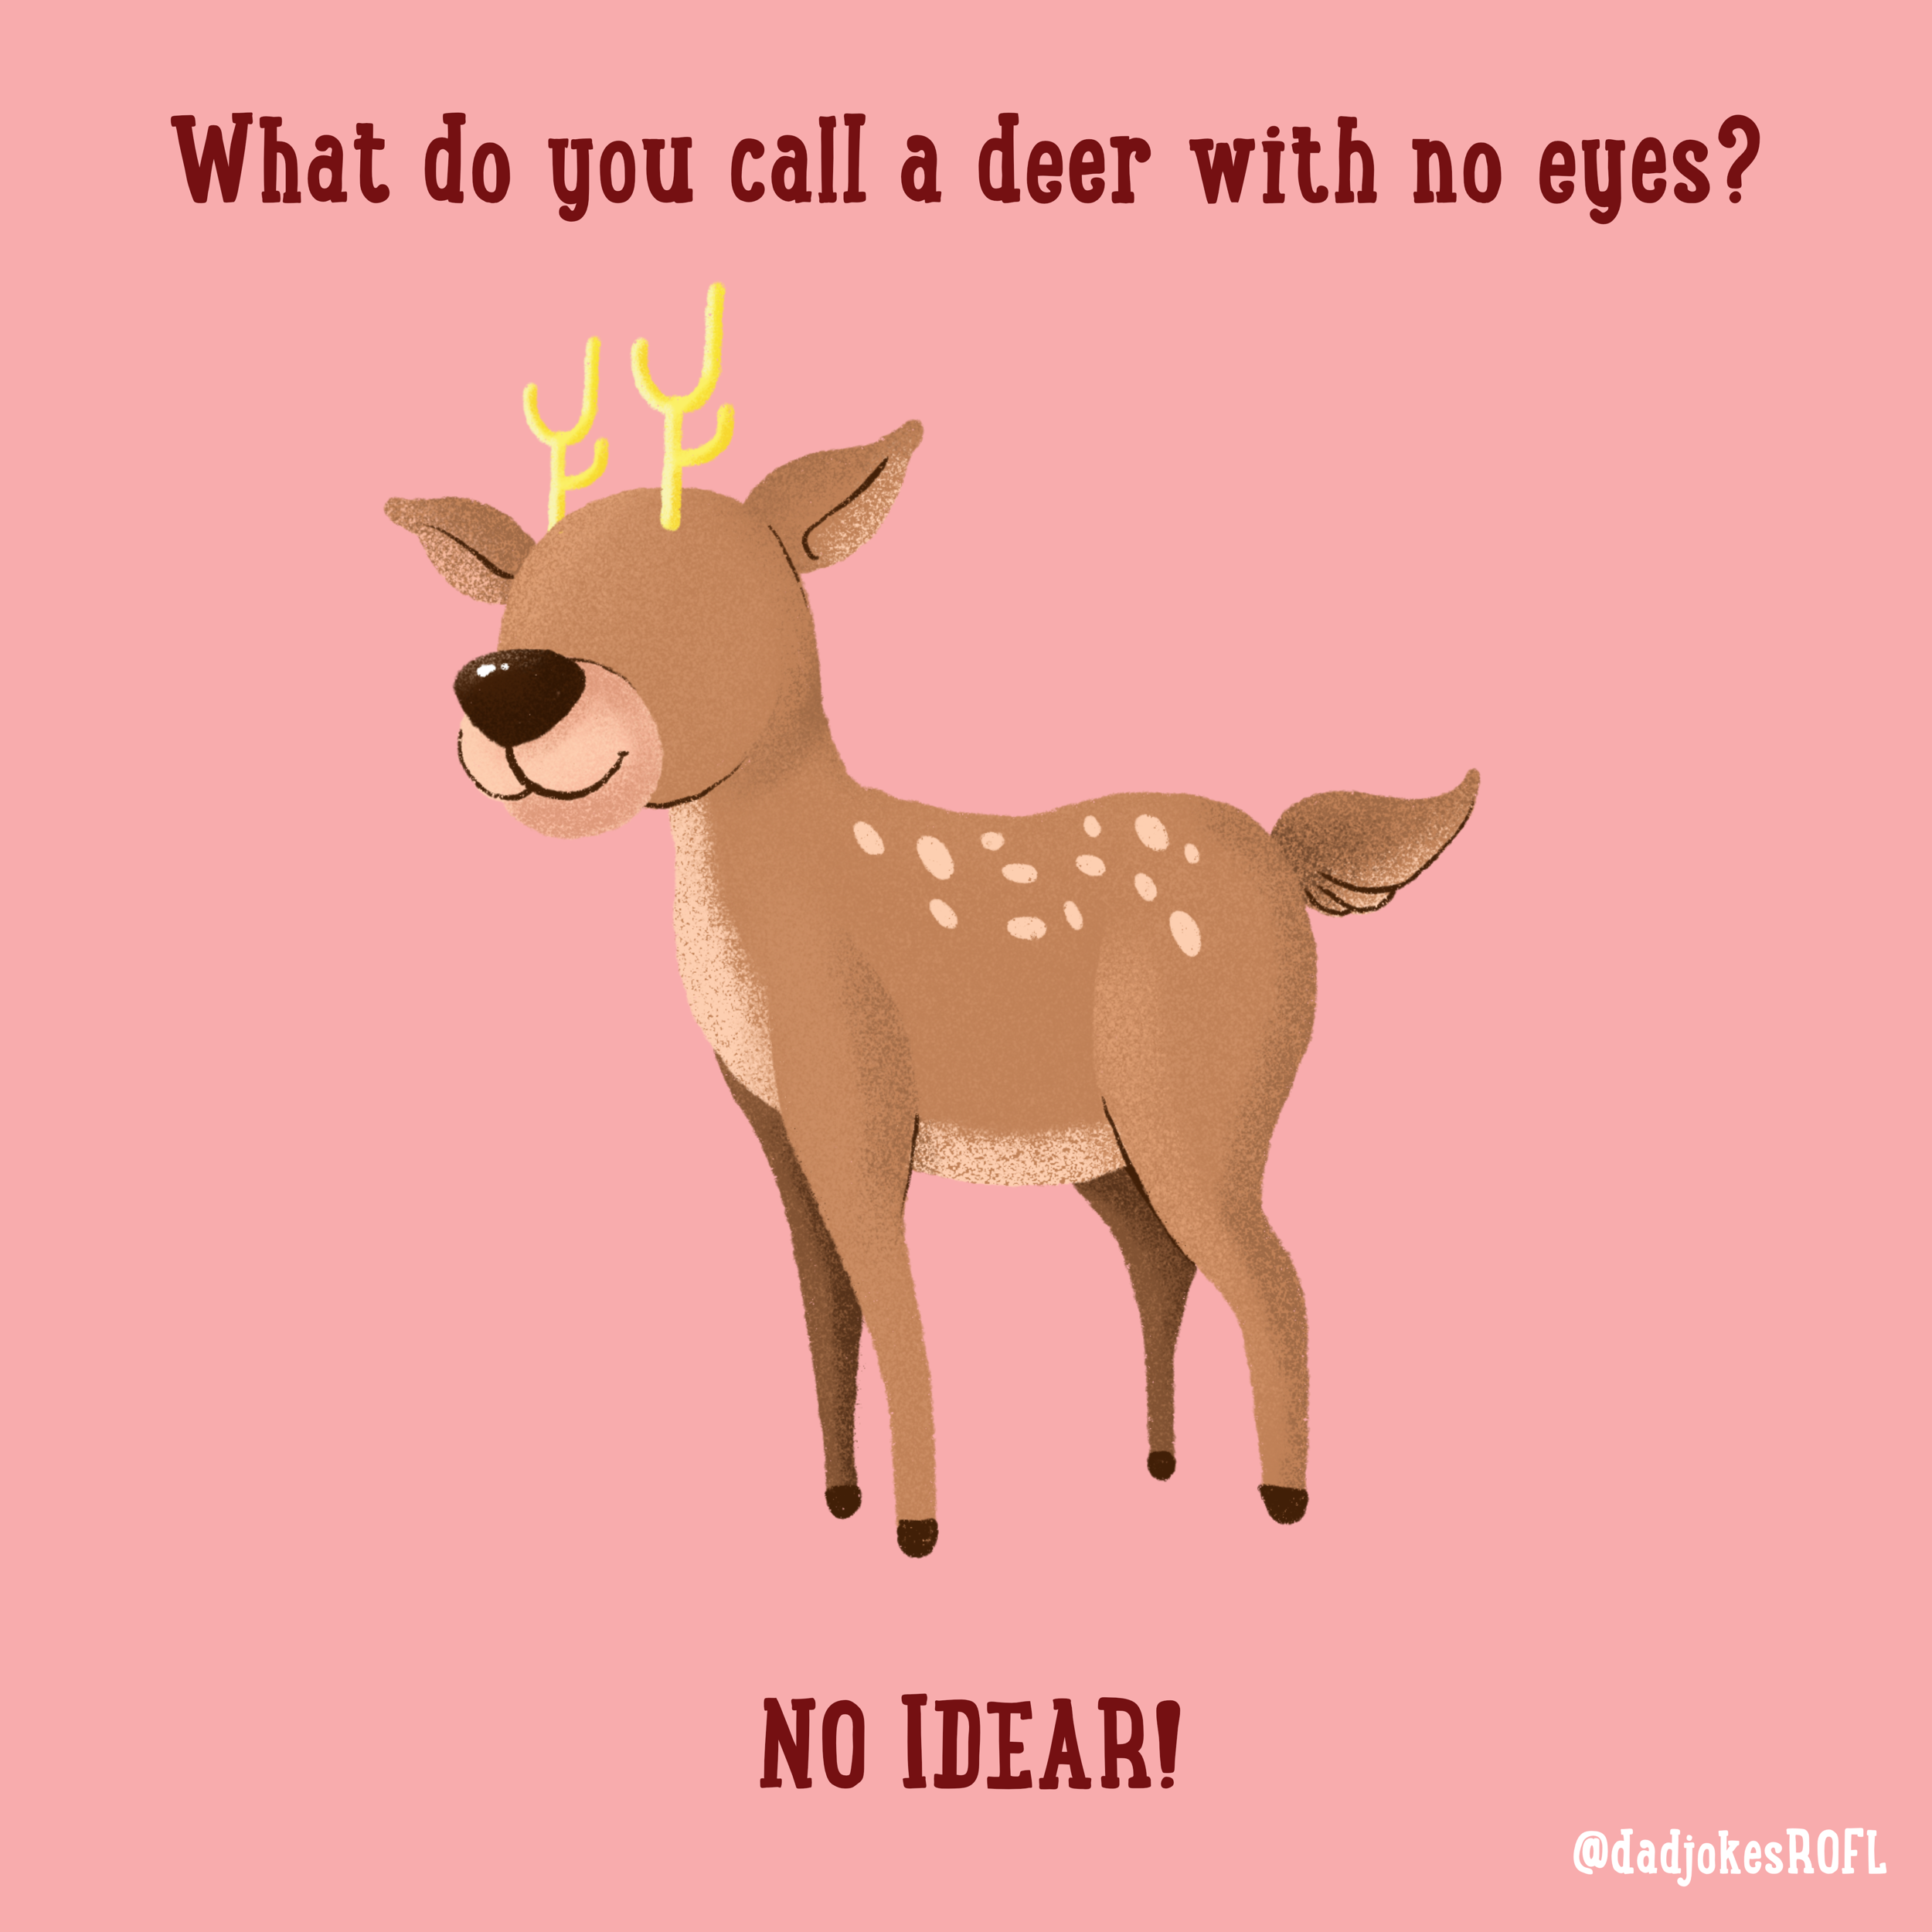 What do you call a deer with no eyes? NO IDEAR!